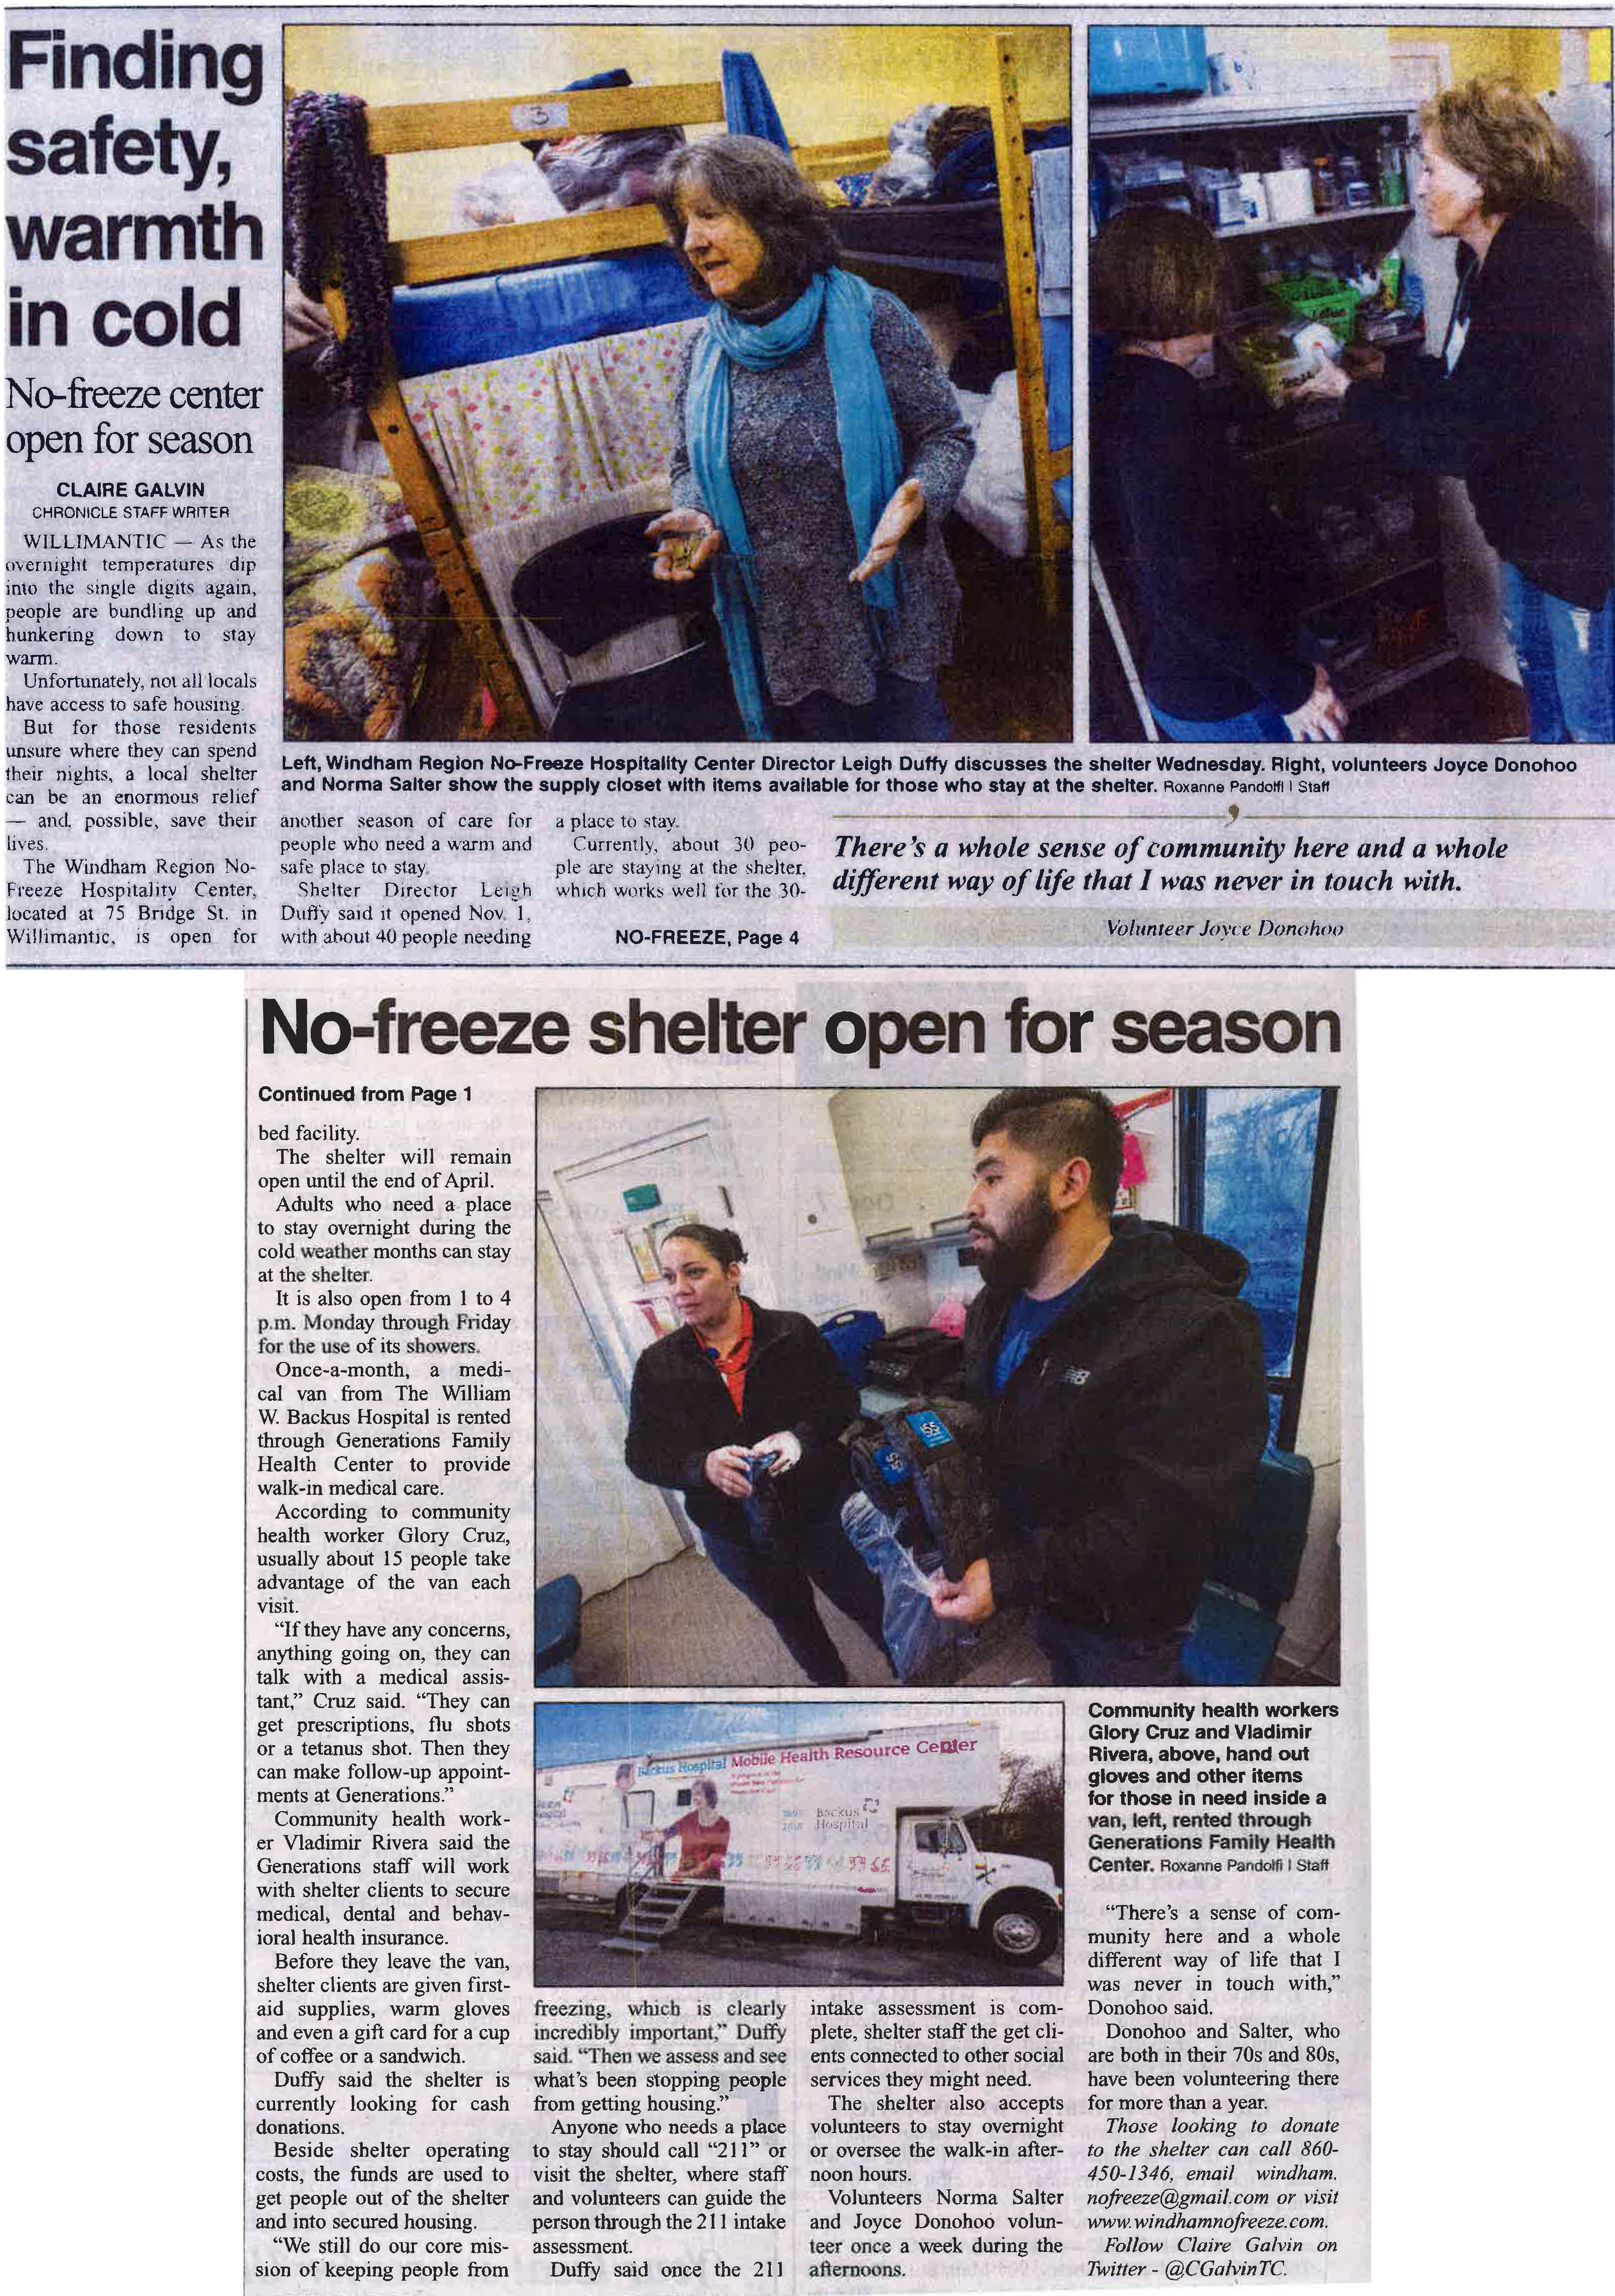 nofreeze shelter news